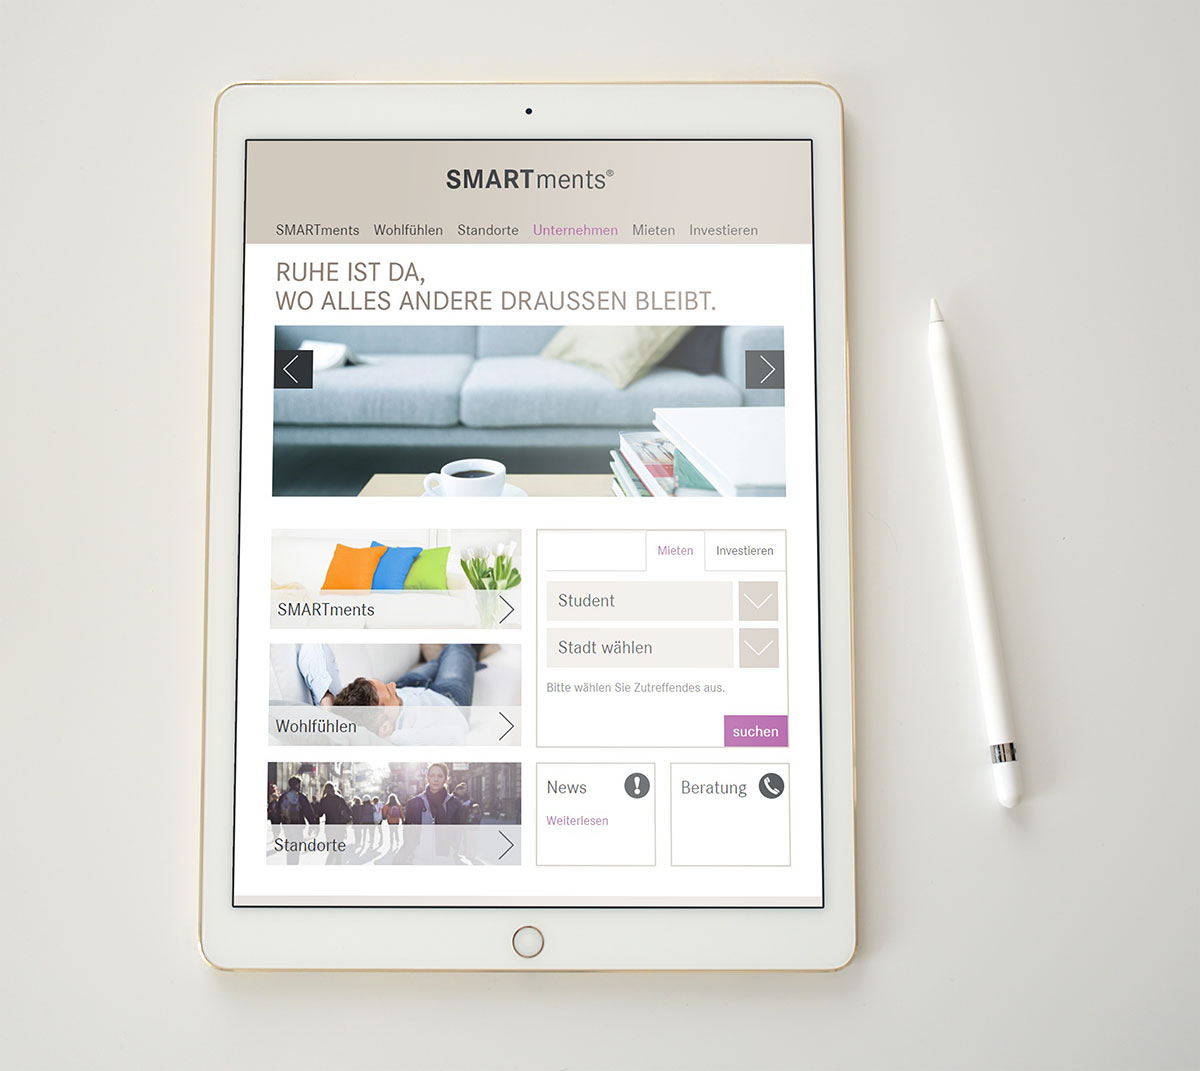 GBI SMARTments Immobilien Tablet Referenz XMouse